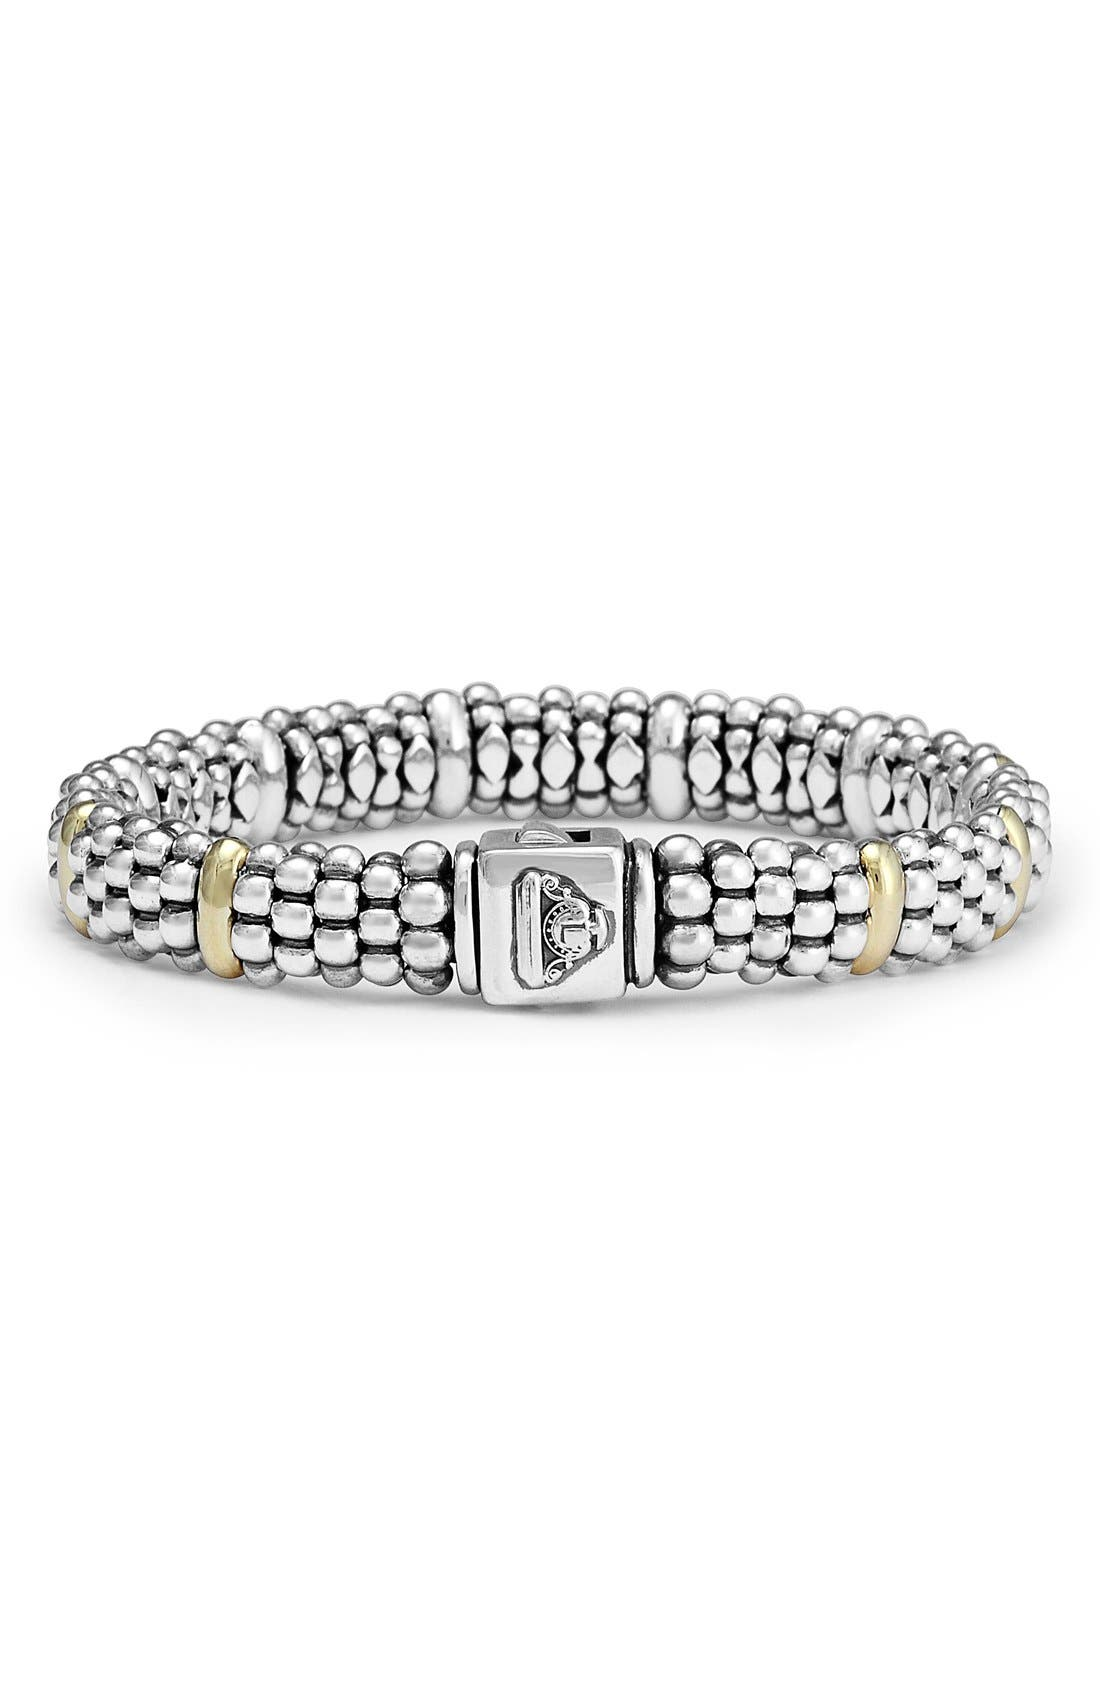 Oval Rope Caviar Bracelet,                             Alternate thumbnail 6, color,                             SILVER/ GOLD